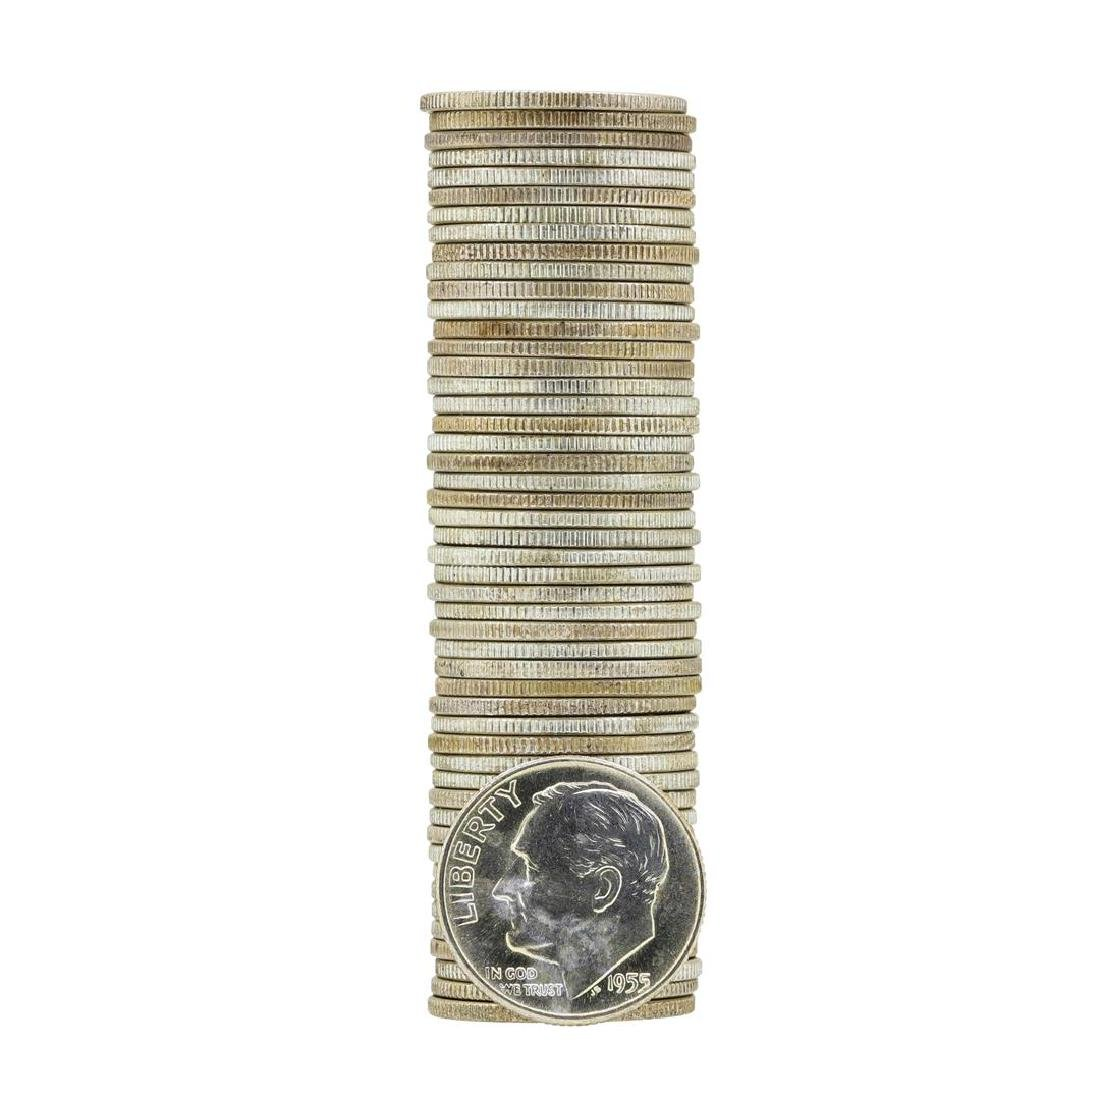 Roll of (50) 1955-D Brilliant Uncirculated Roosevelt